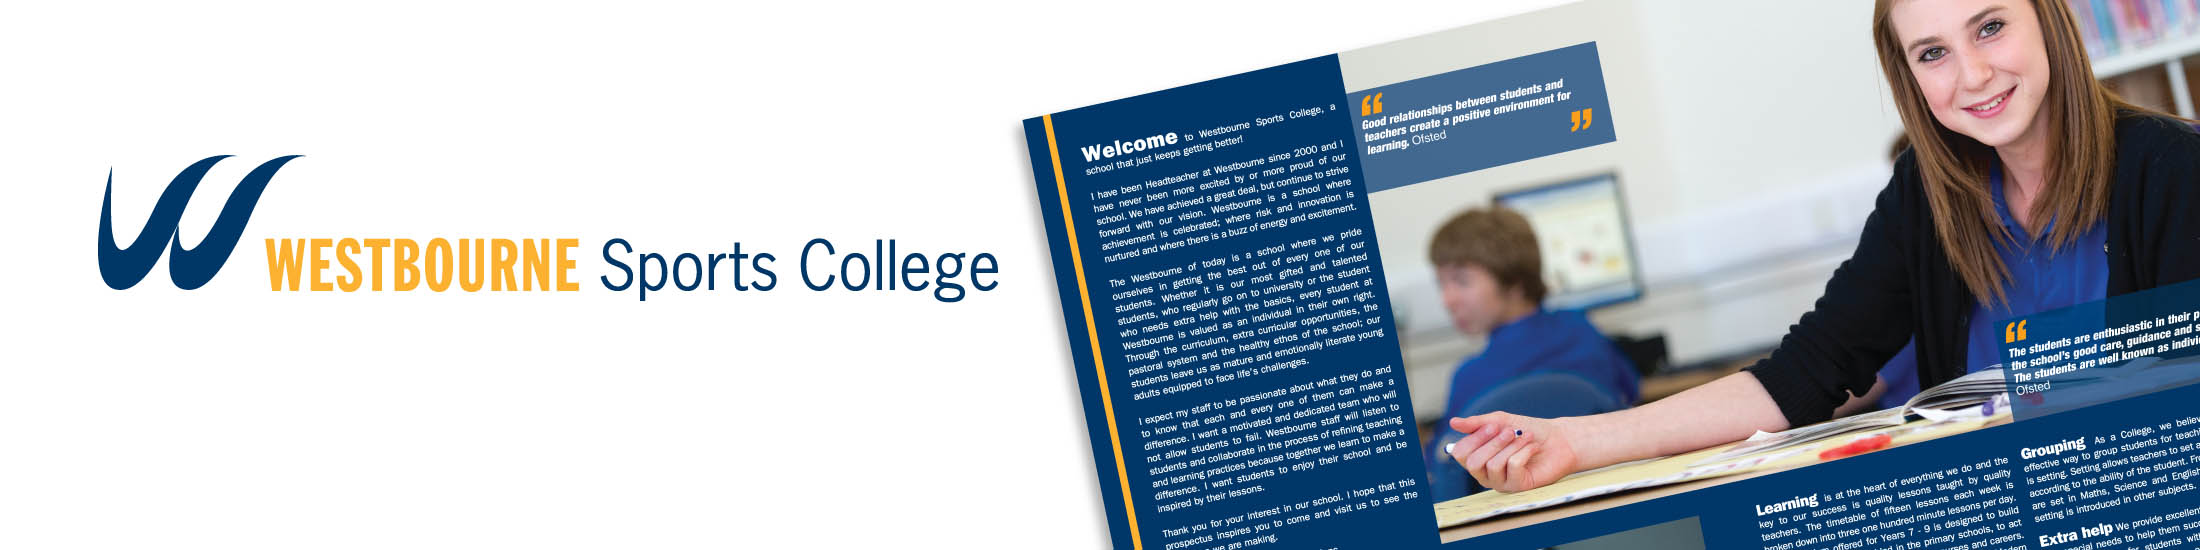 Westbourne Sports College corporate ID